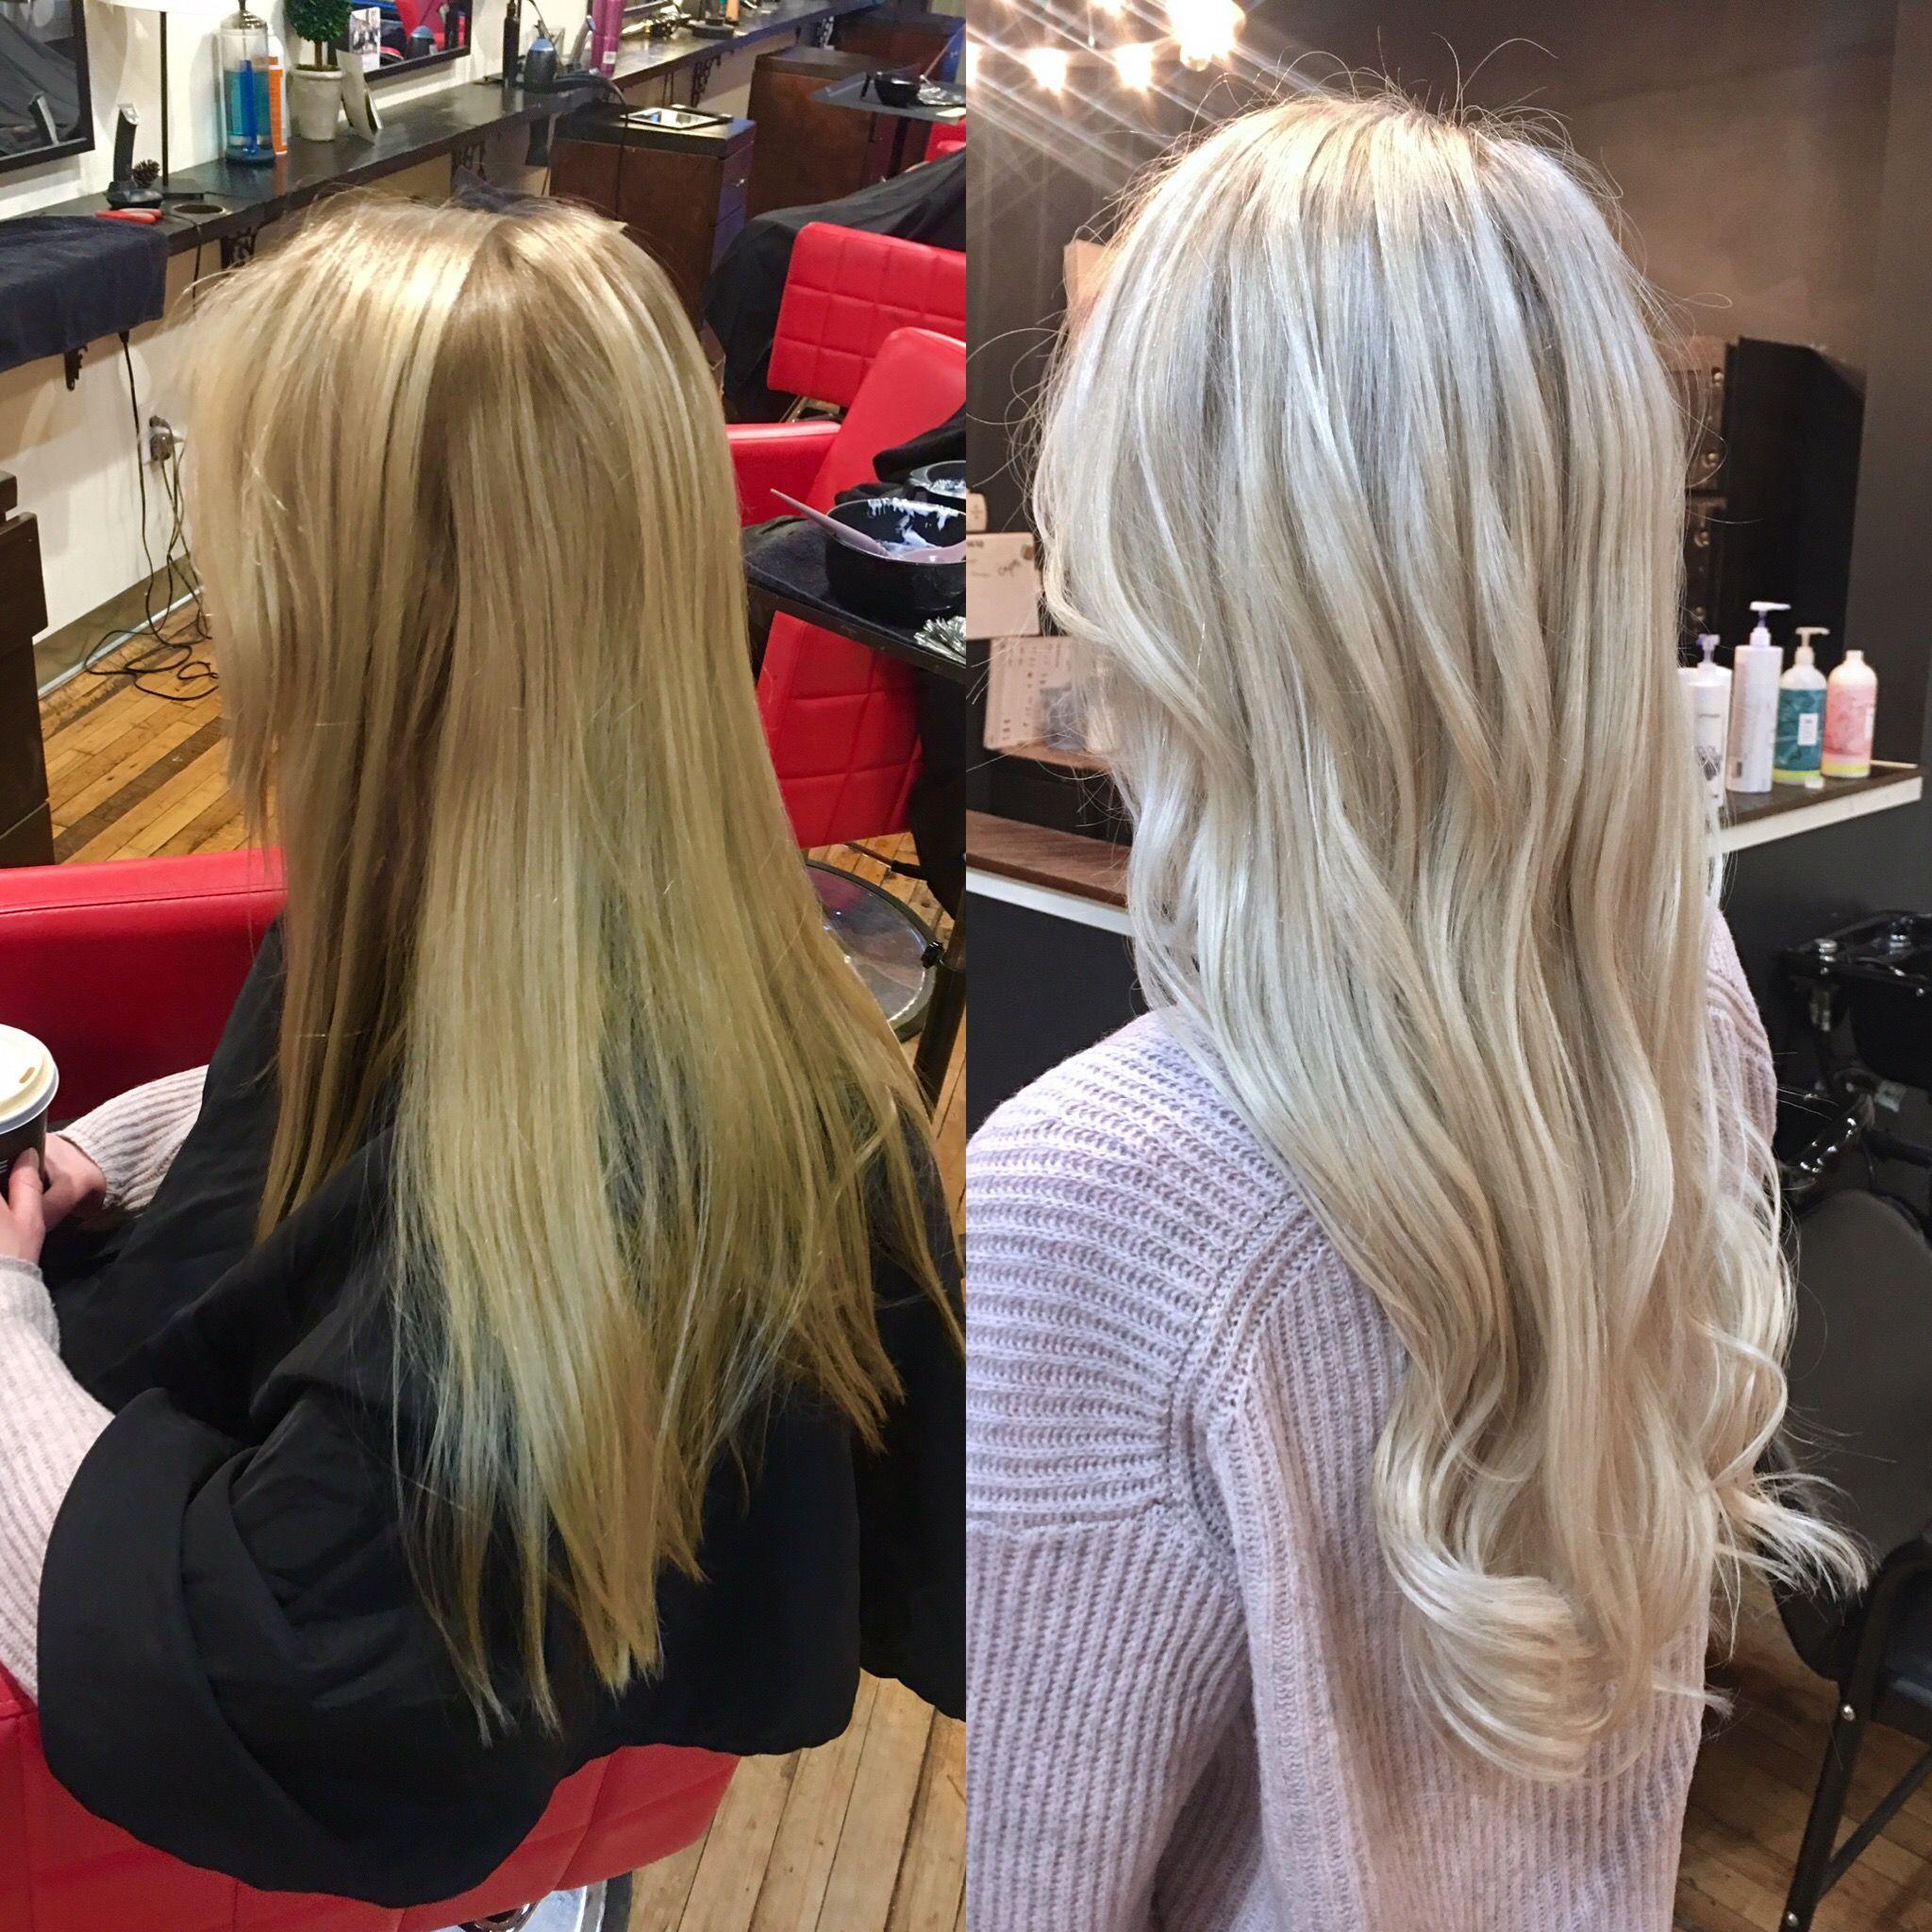 Blonde hair foils. Platinum hair. Icy hair. Hair transformation.